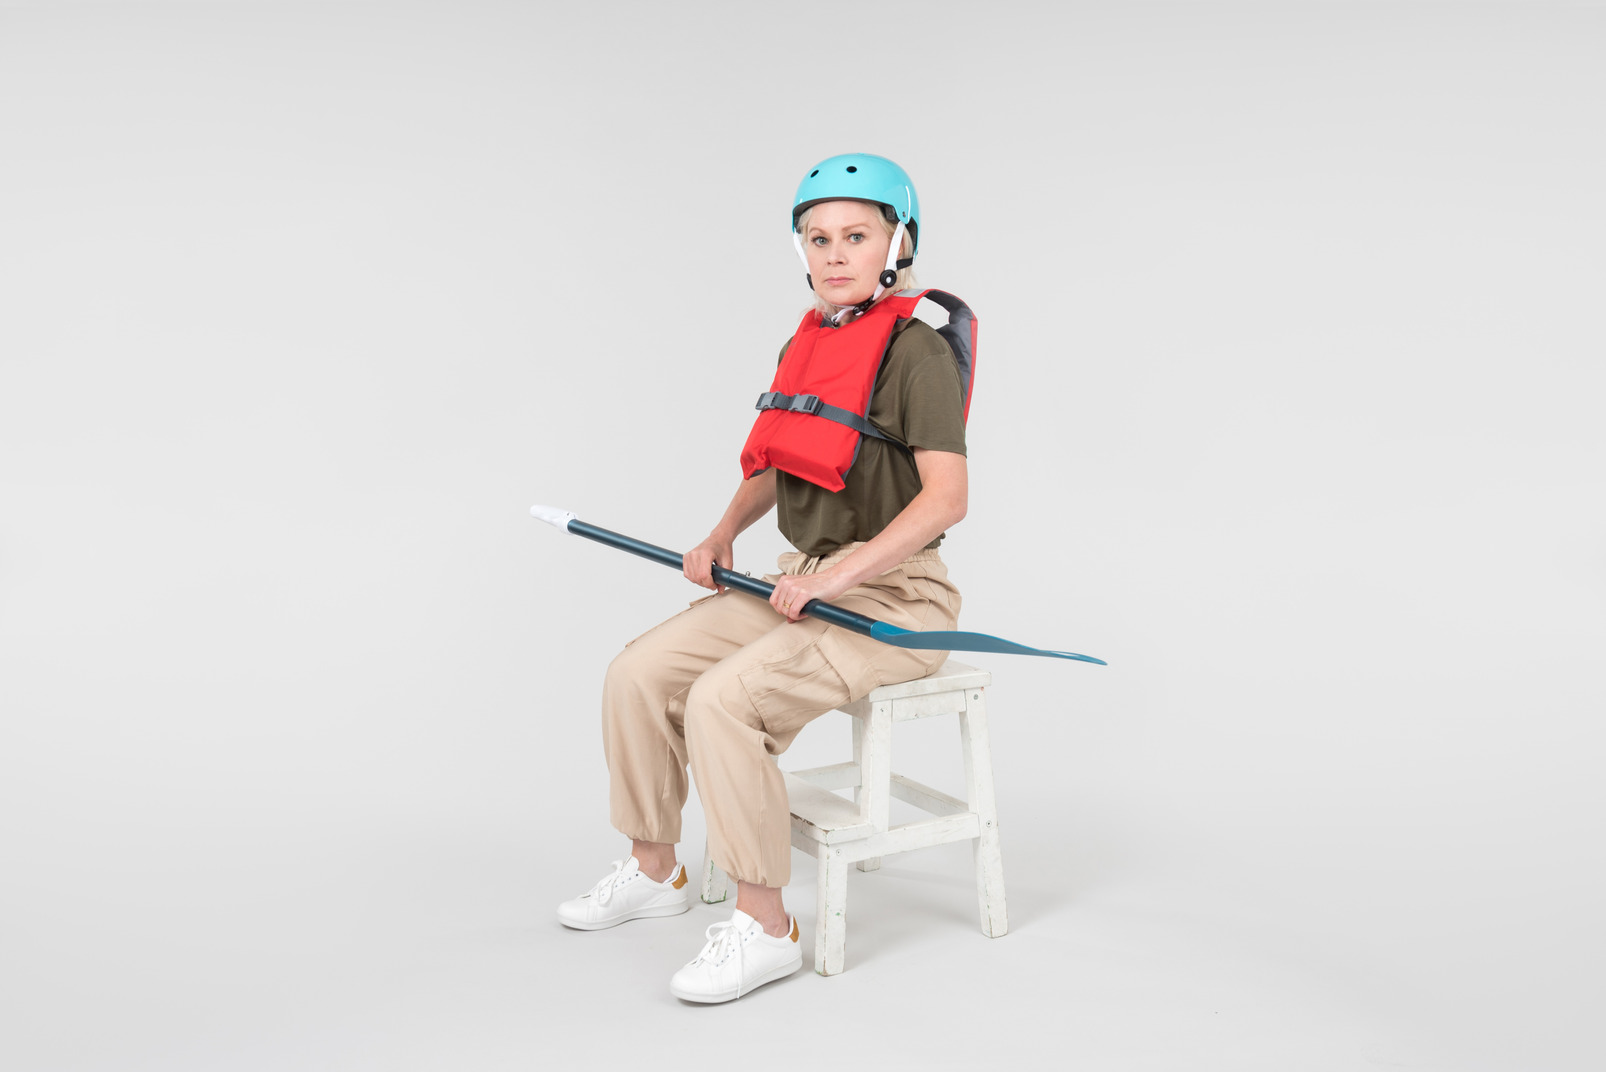 Mature woman wearing life vest and blue helmet holding paddle